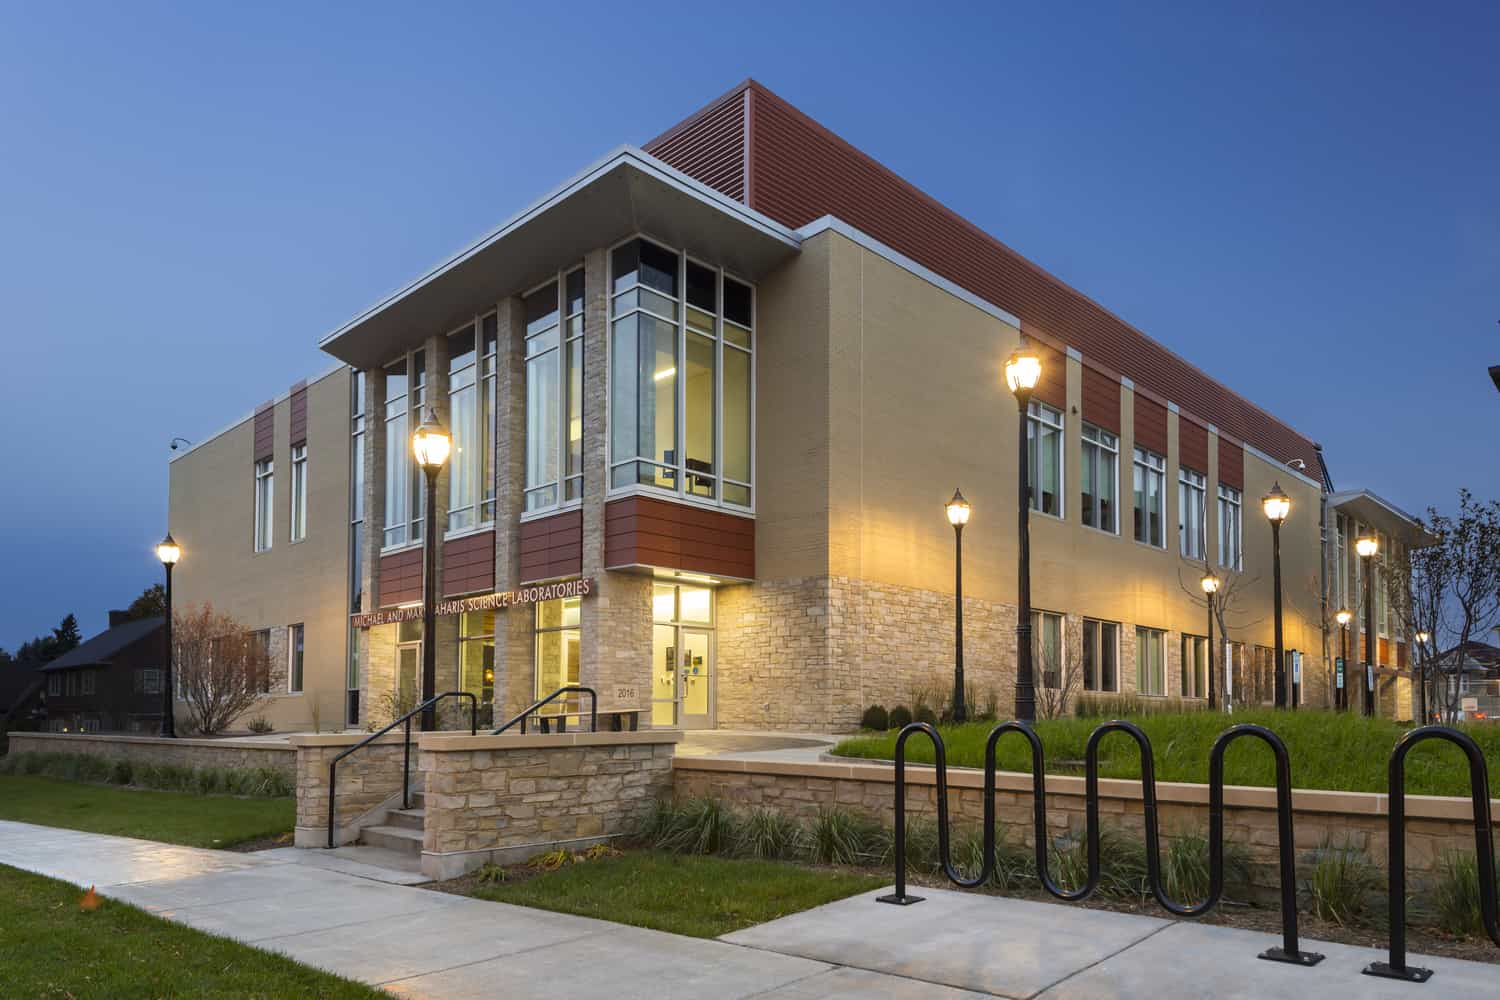 Carroll University Michael & Mary Jaharis Science Laboratories